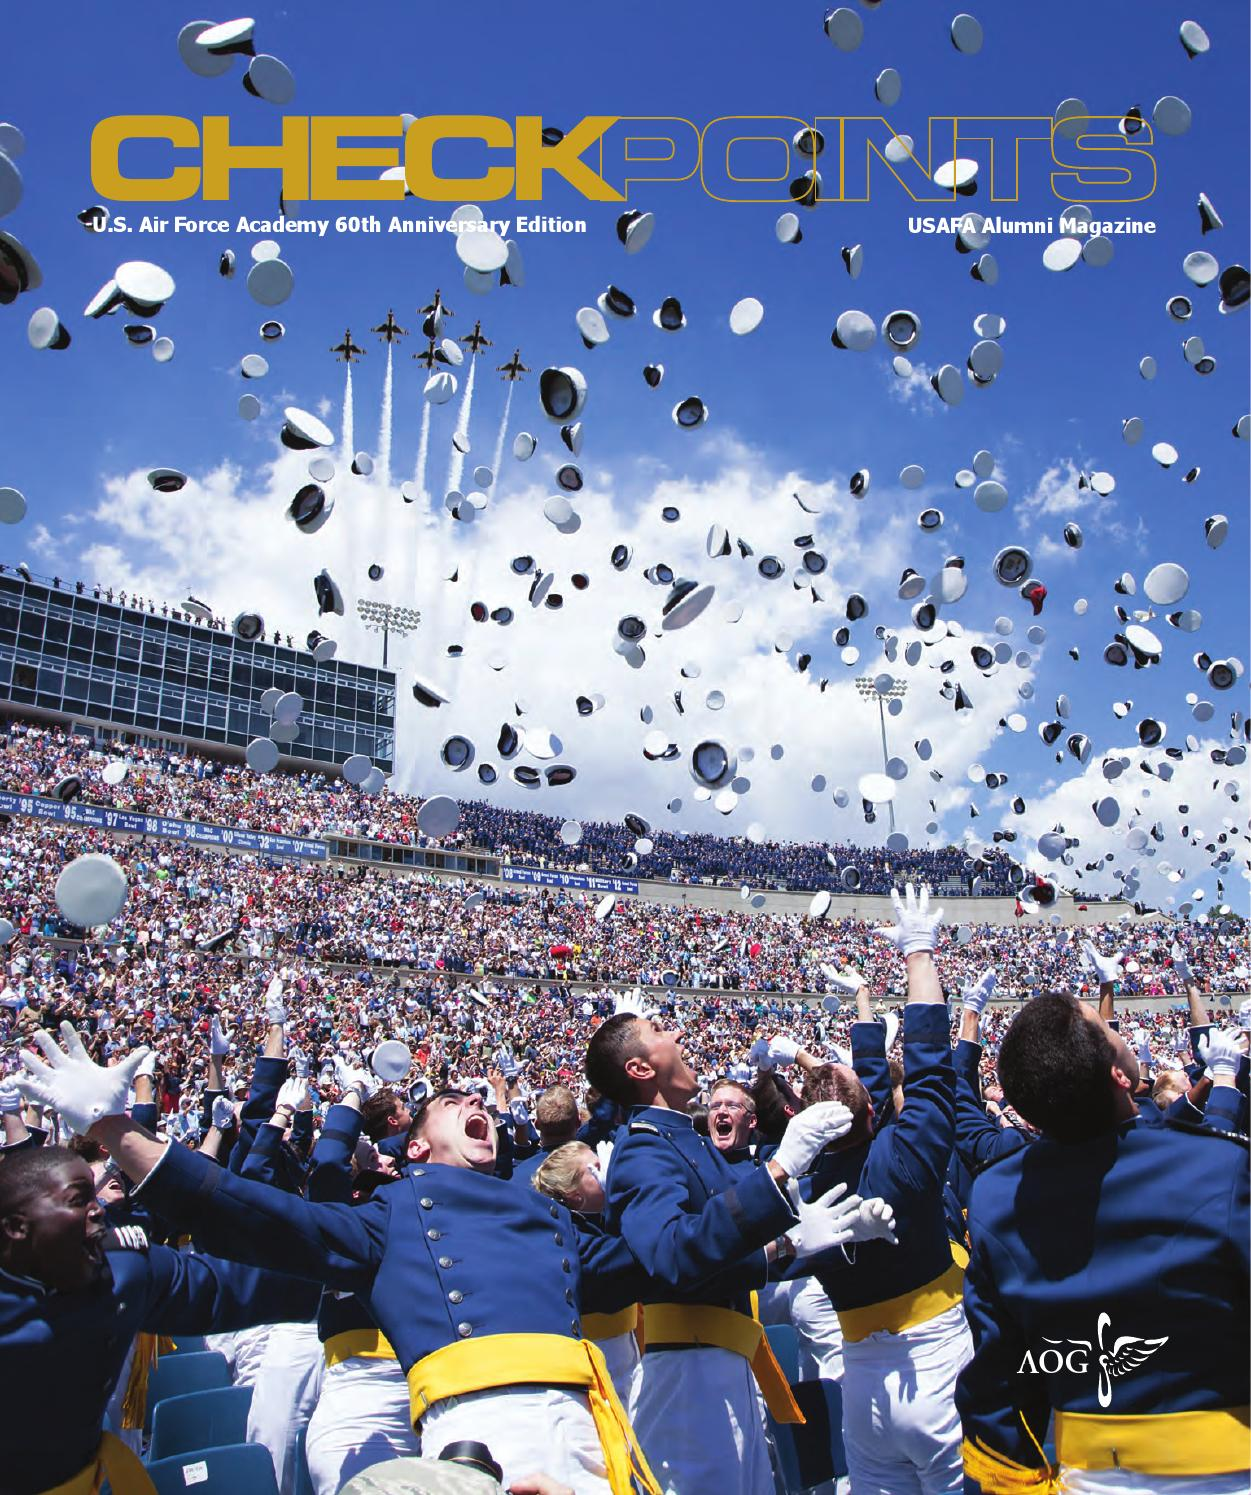 checkpoints - june 2014 (60th anniversary edition) by usafa